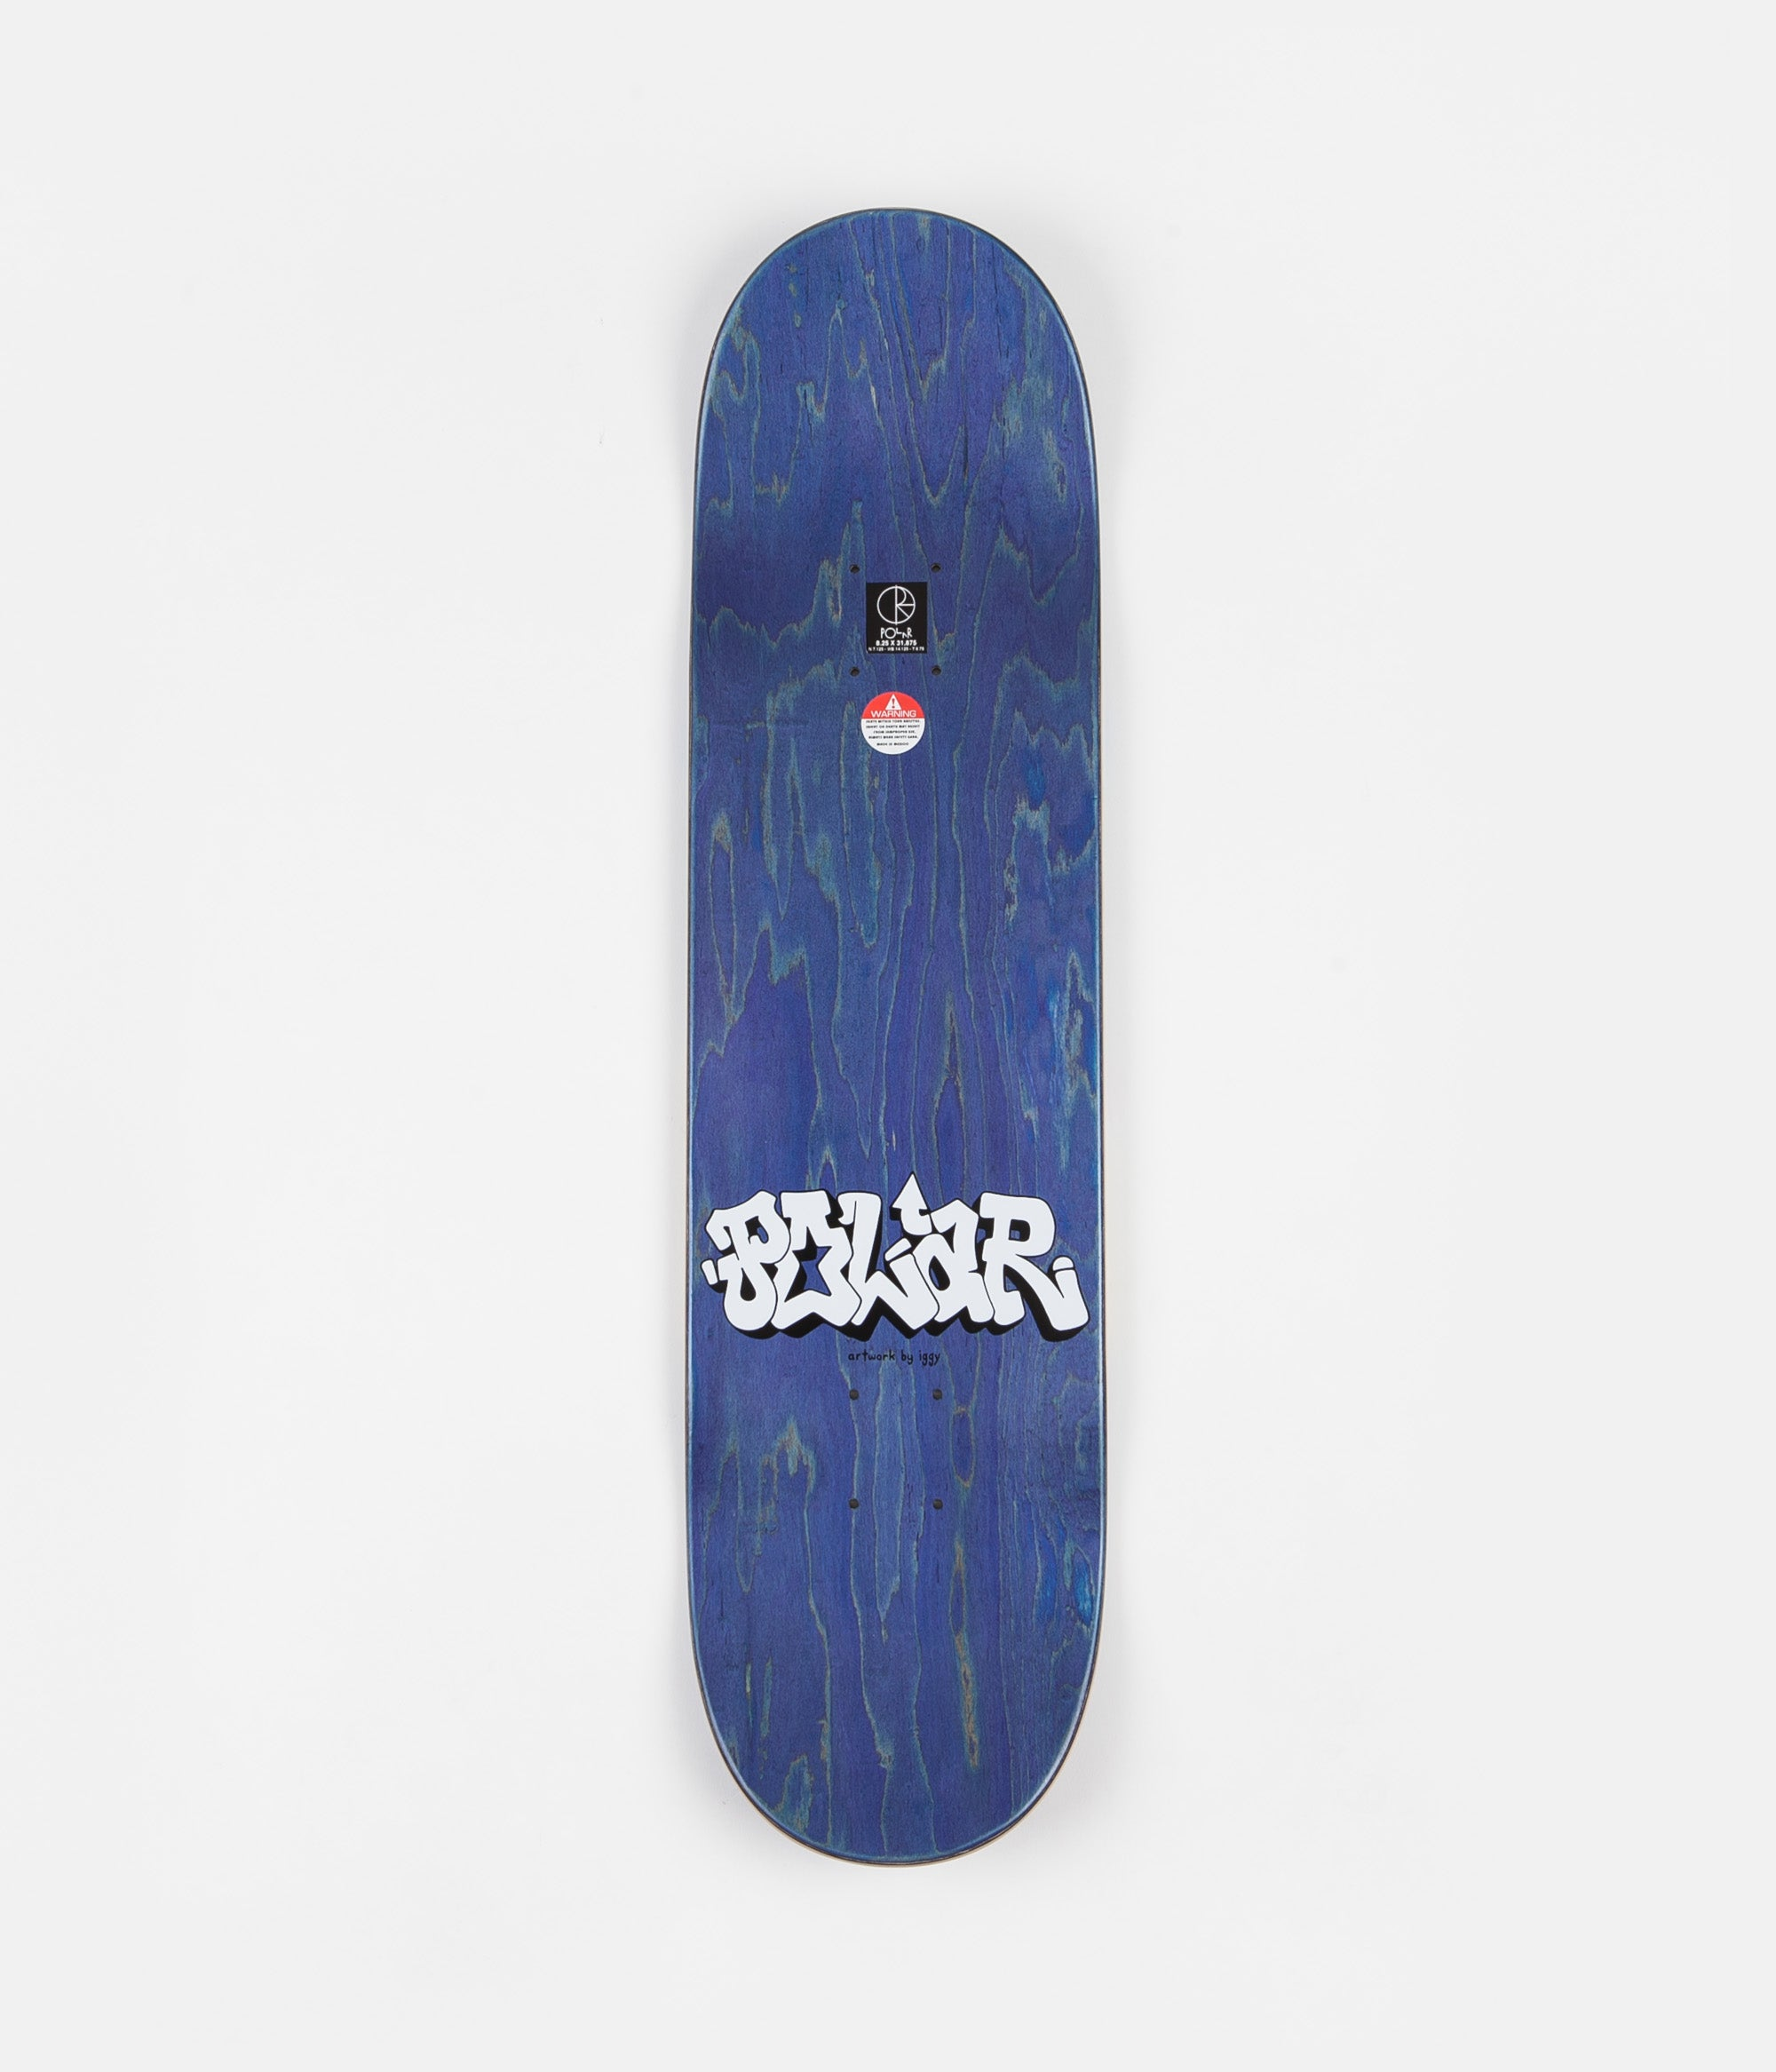 Polar x Iggy Boys On A Ramp Deck - Blue - 8.25""